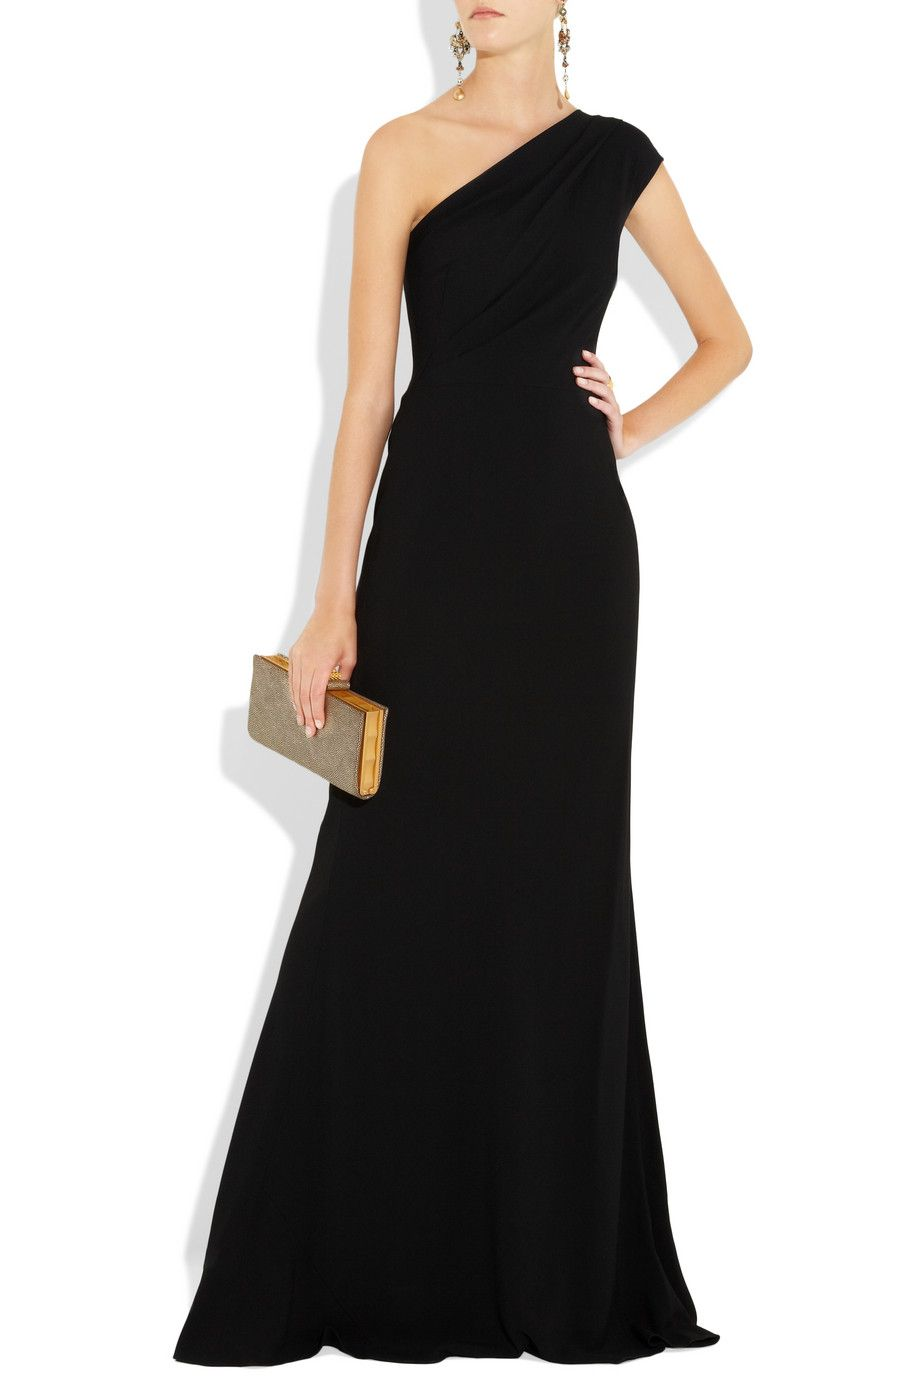 RALPH LAUREN COLLECTION Crepe one-shoulder gown | DIY For me: Pretty ...